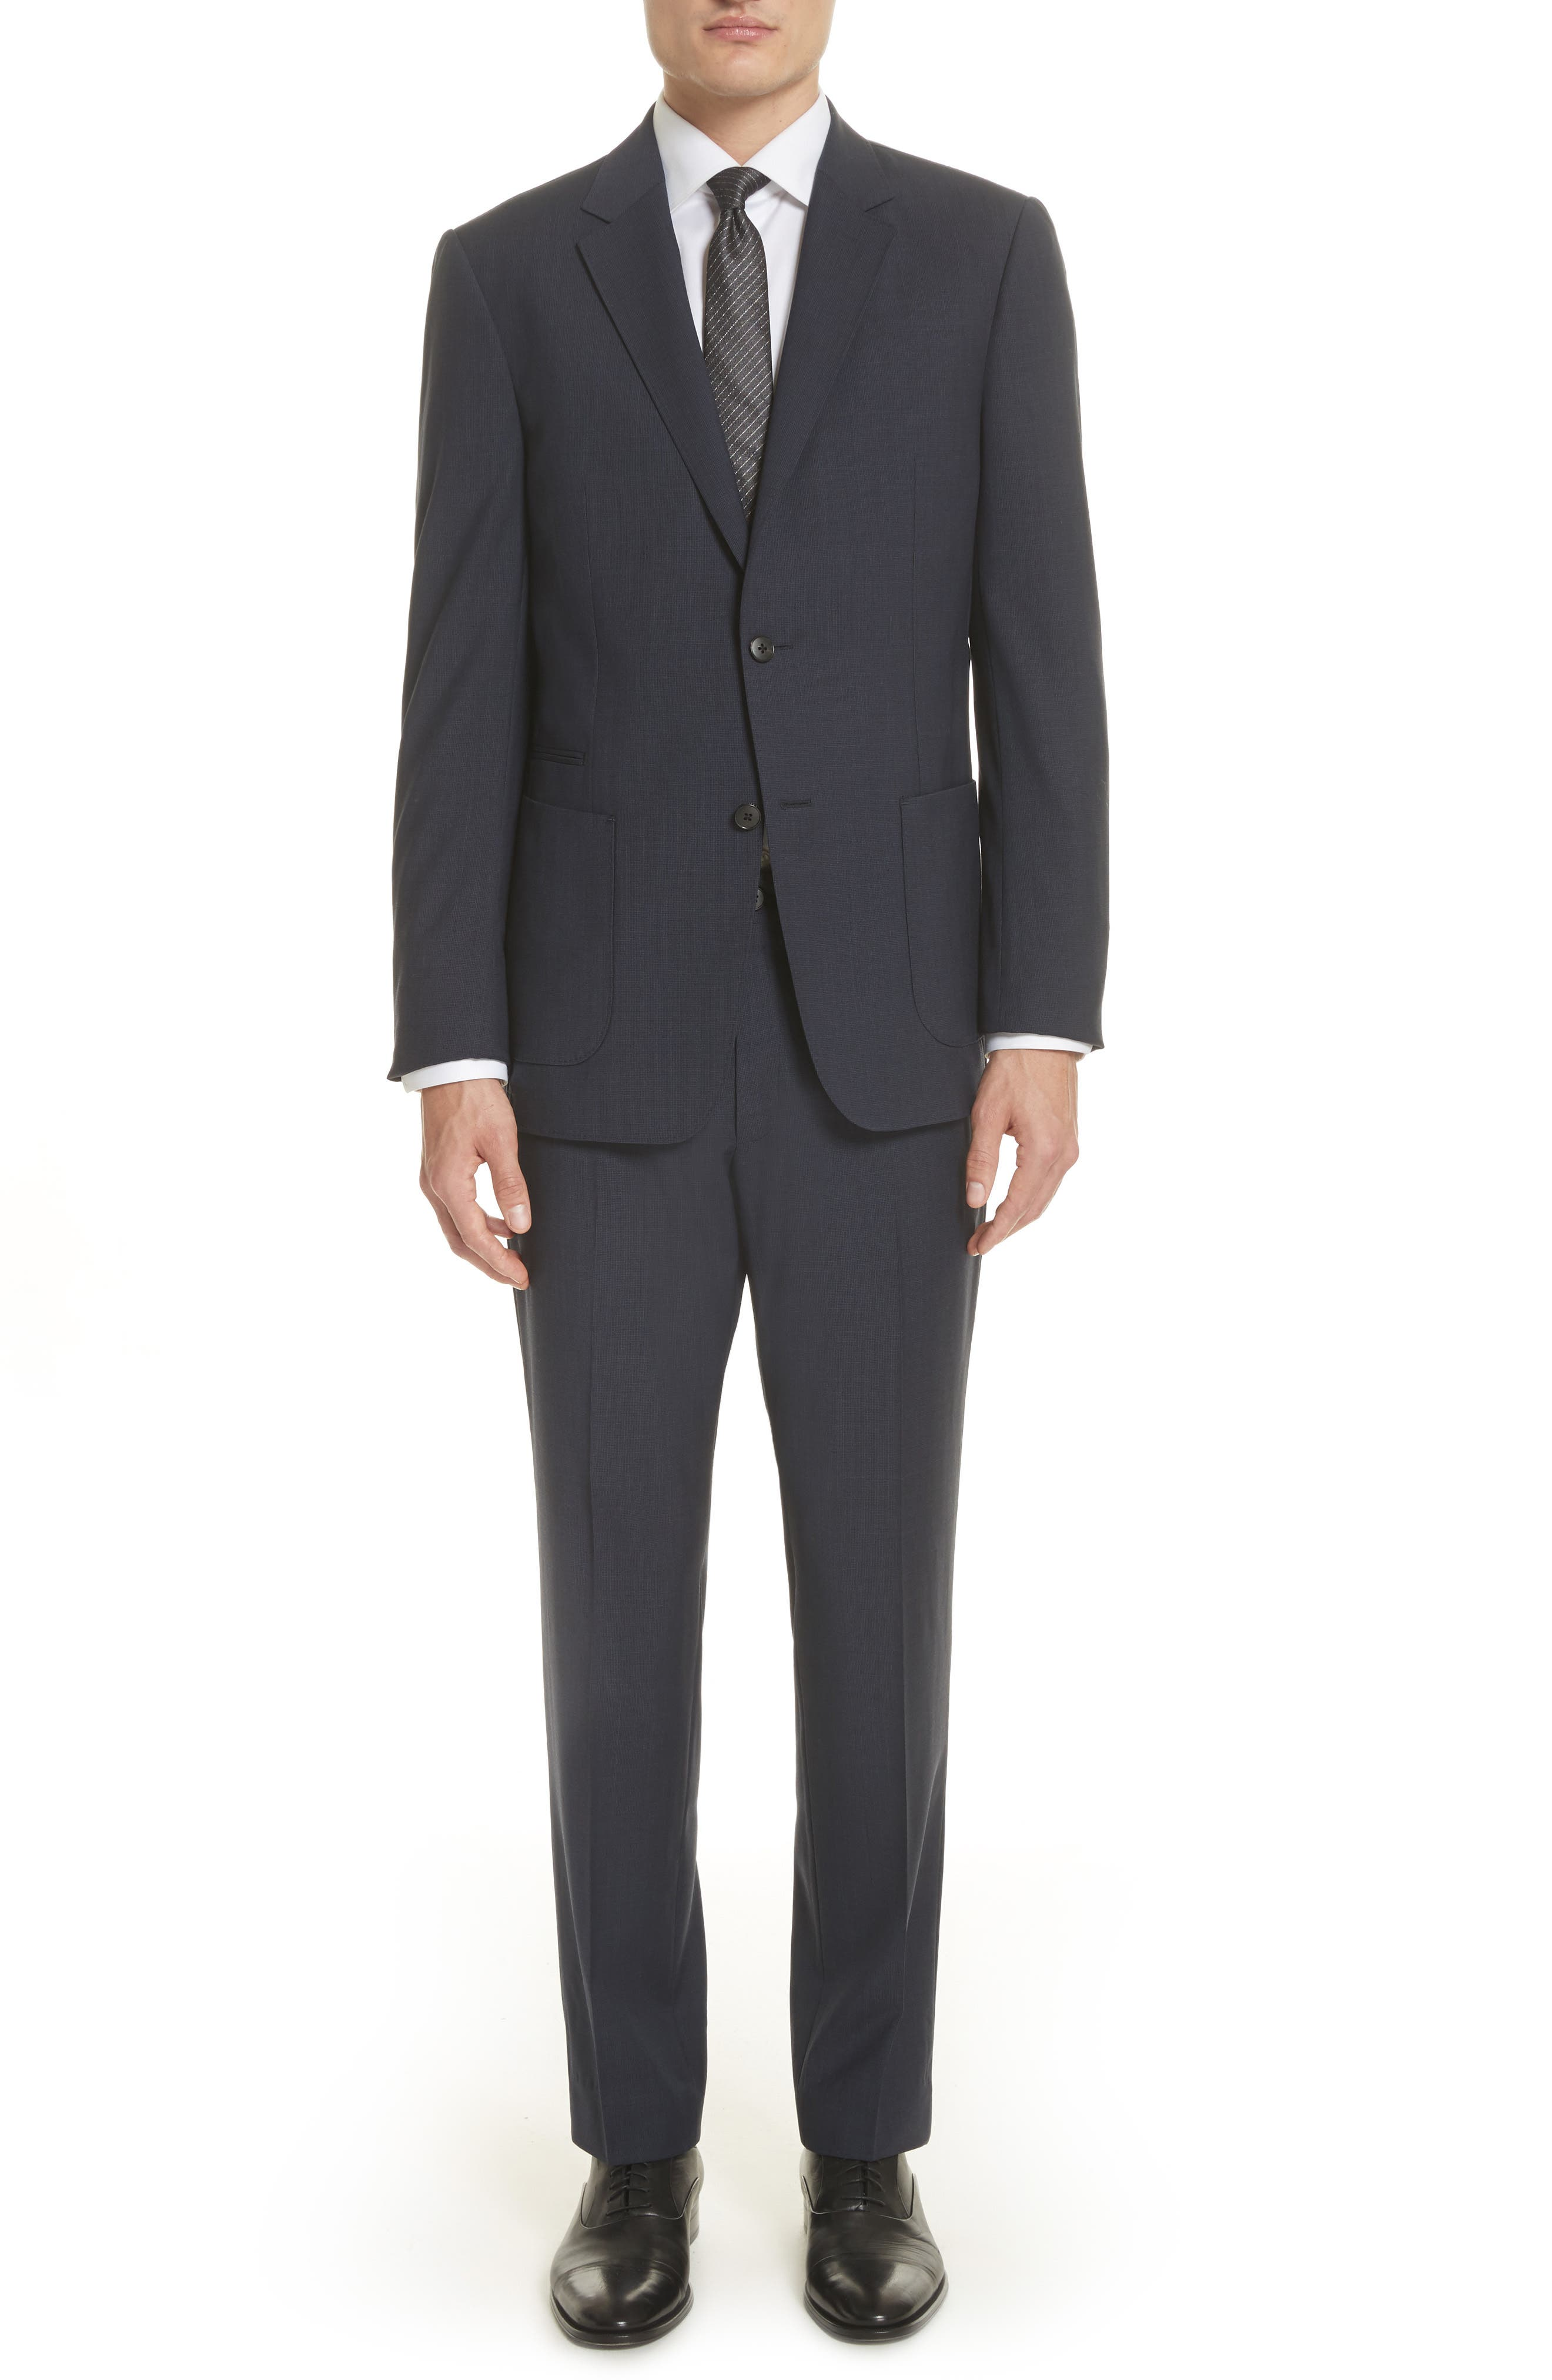 TECHMERINO<sup>™</sup> Wash & Go Trim Fit Solid Wool Suit,                             Alternate thumbnail 8, color,                             412